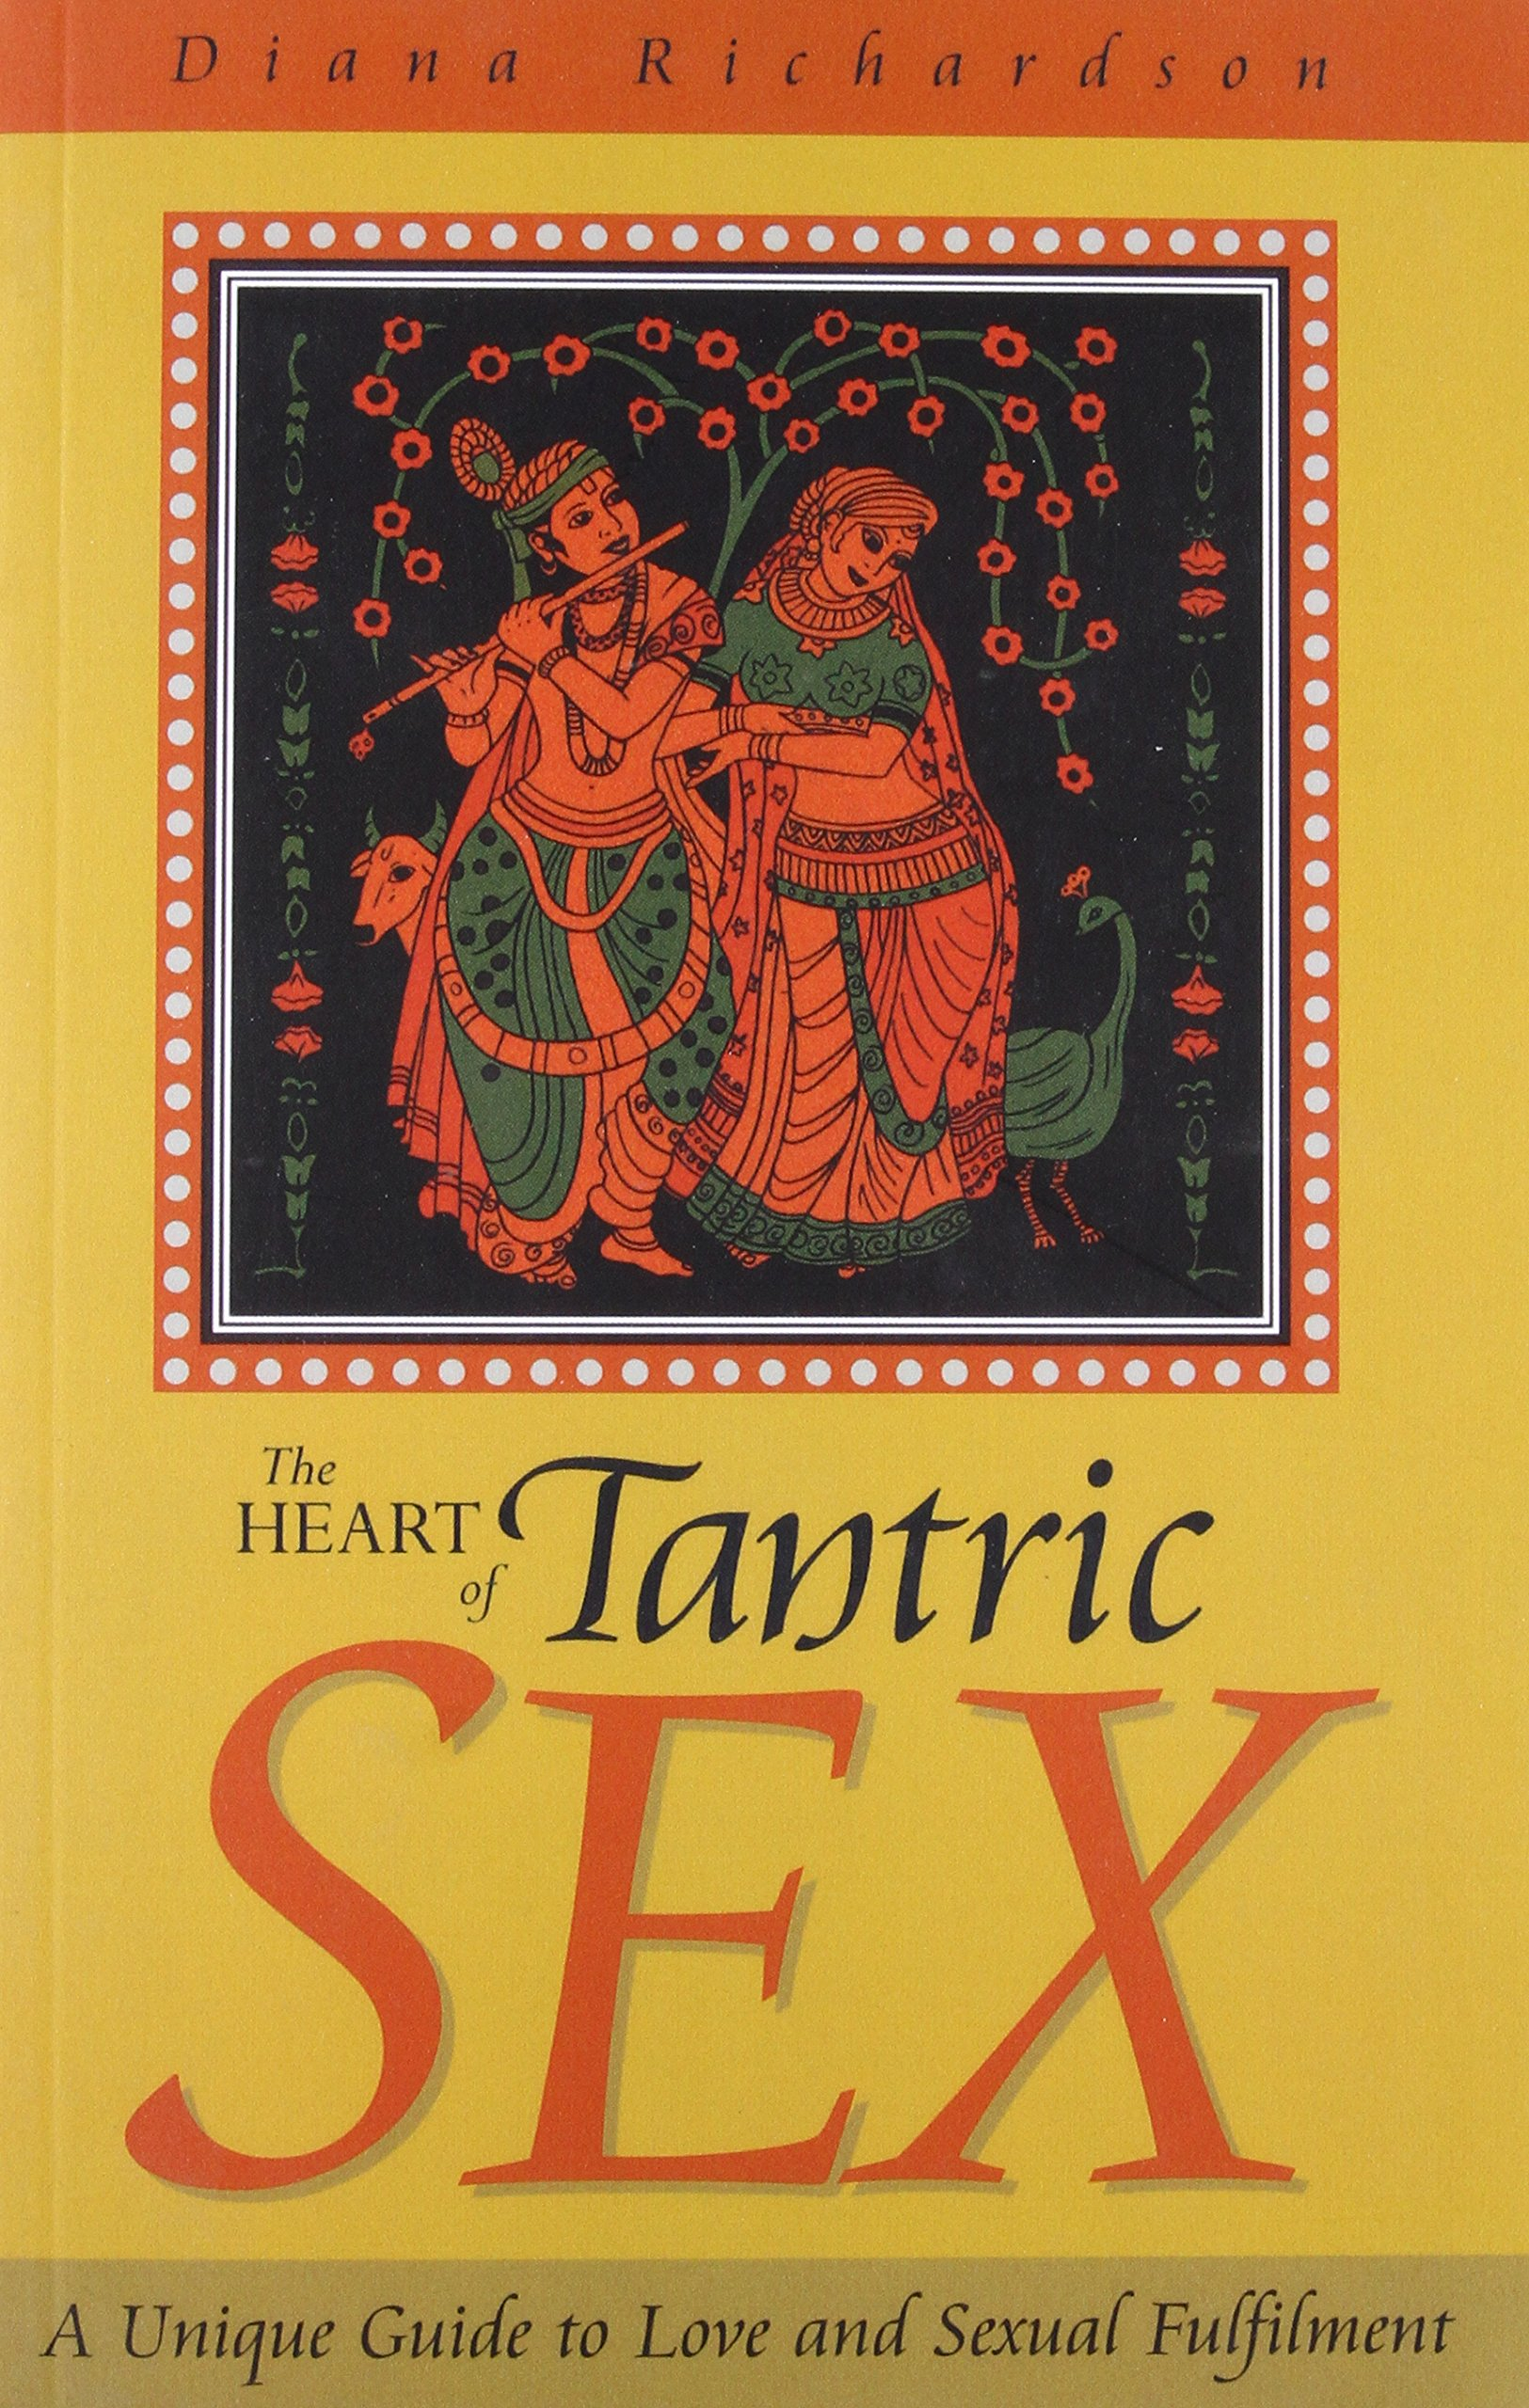 Guide illustrated sacred sex sexuality spirit